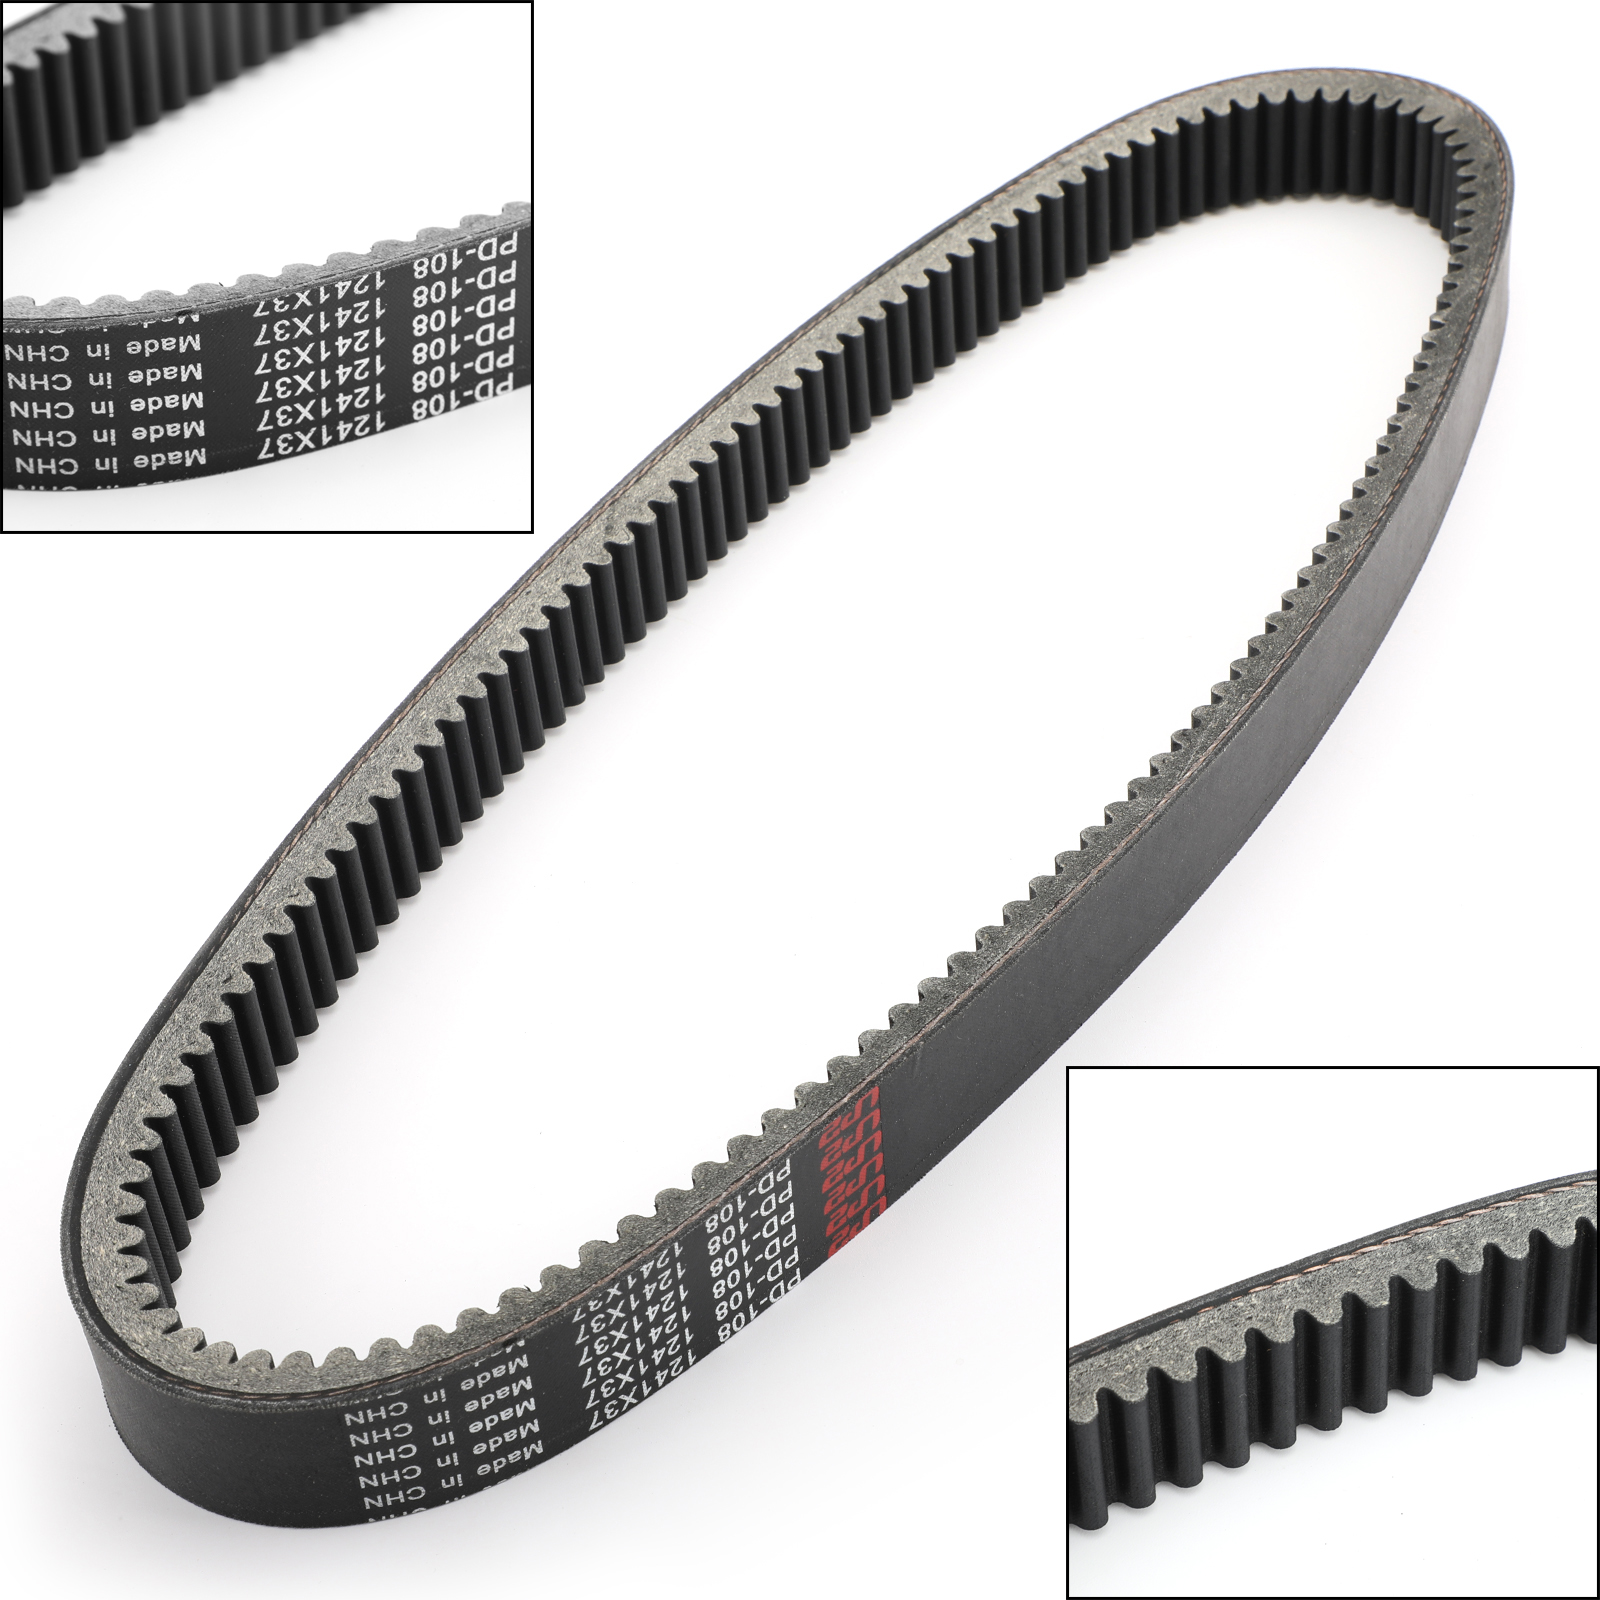 Artudatech 0627-014 Drive Belt 1241OC X 37W For Arctic Cat 0627014 Bearcat Wide Track 440 550 660 Snowmobile Accessories